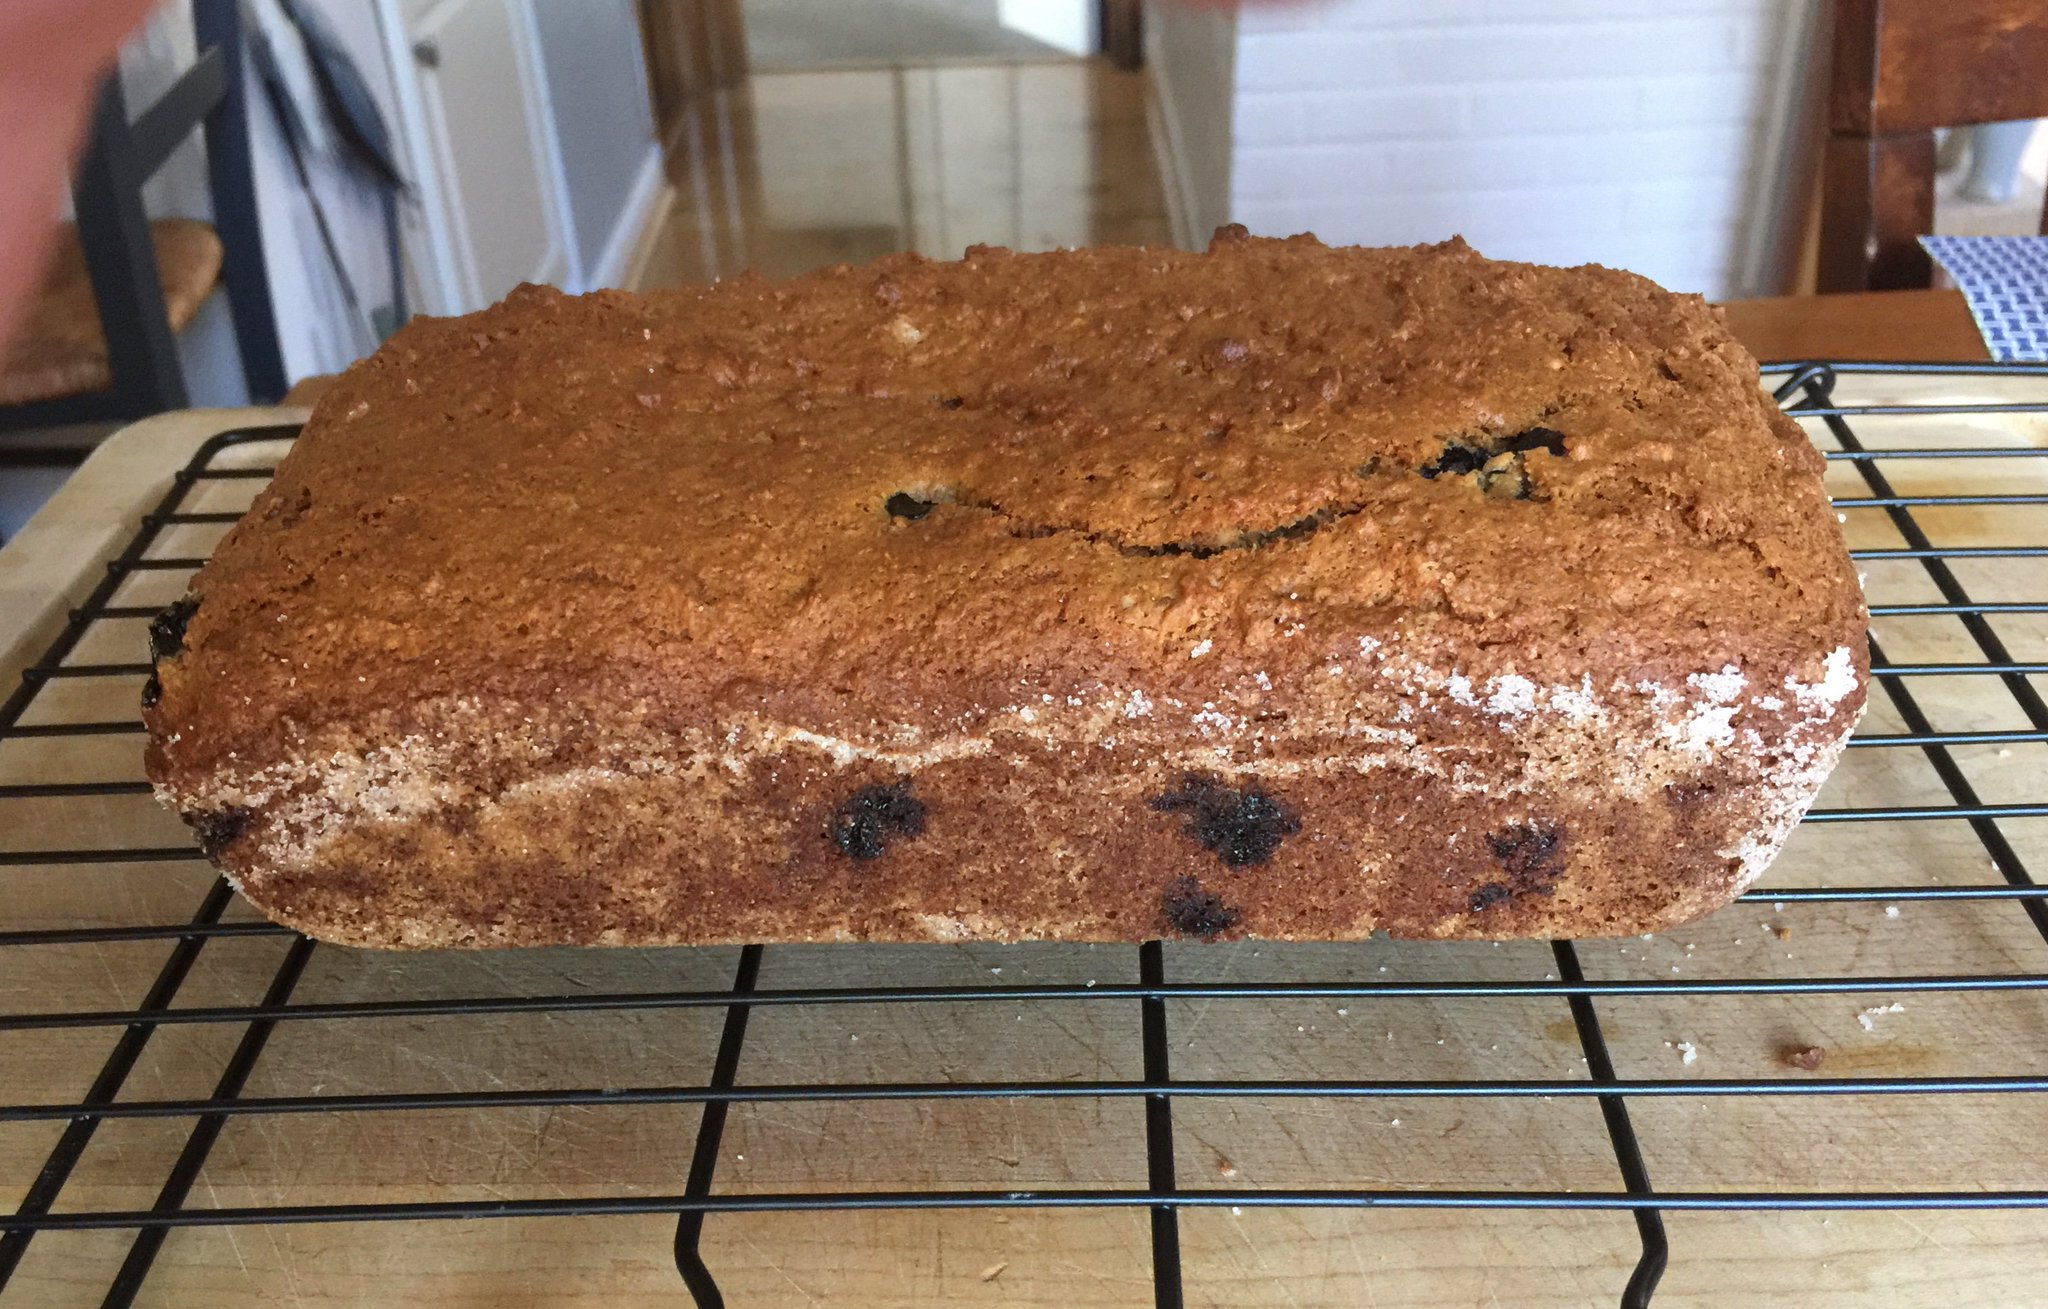 #WillyStreet #Coop #online #lifesaver #for mystery #bulkfood items #bananabread https://t.co/LuzbyN4qGT https://t.co/6vT5BwCPfB